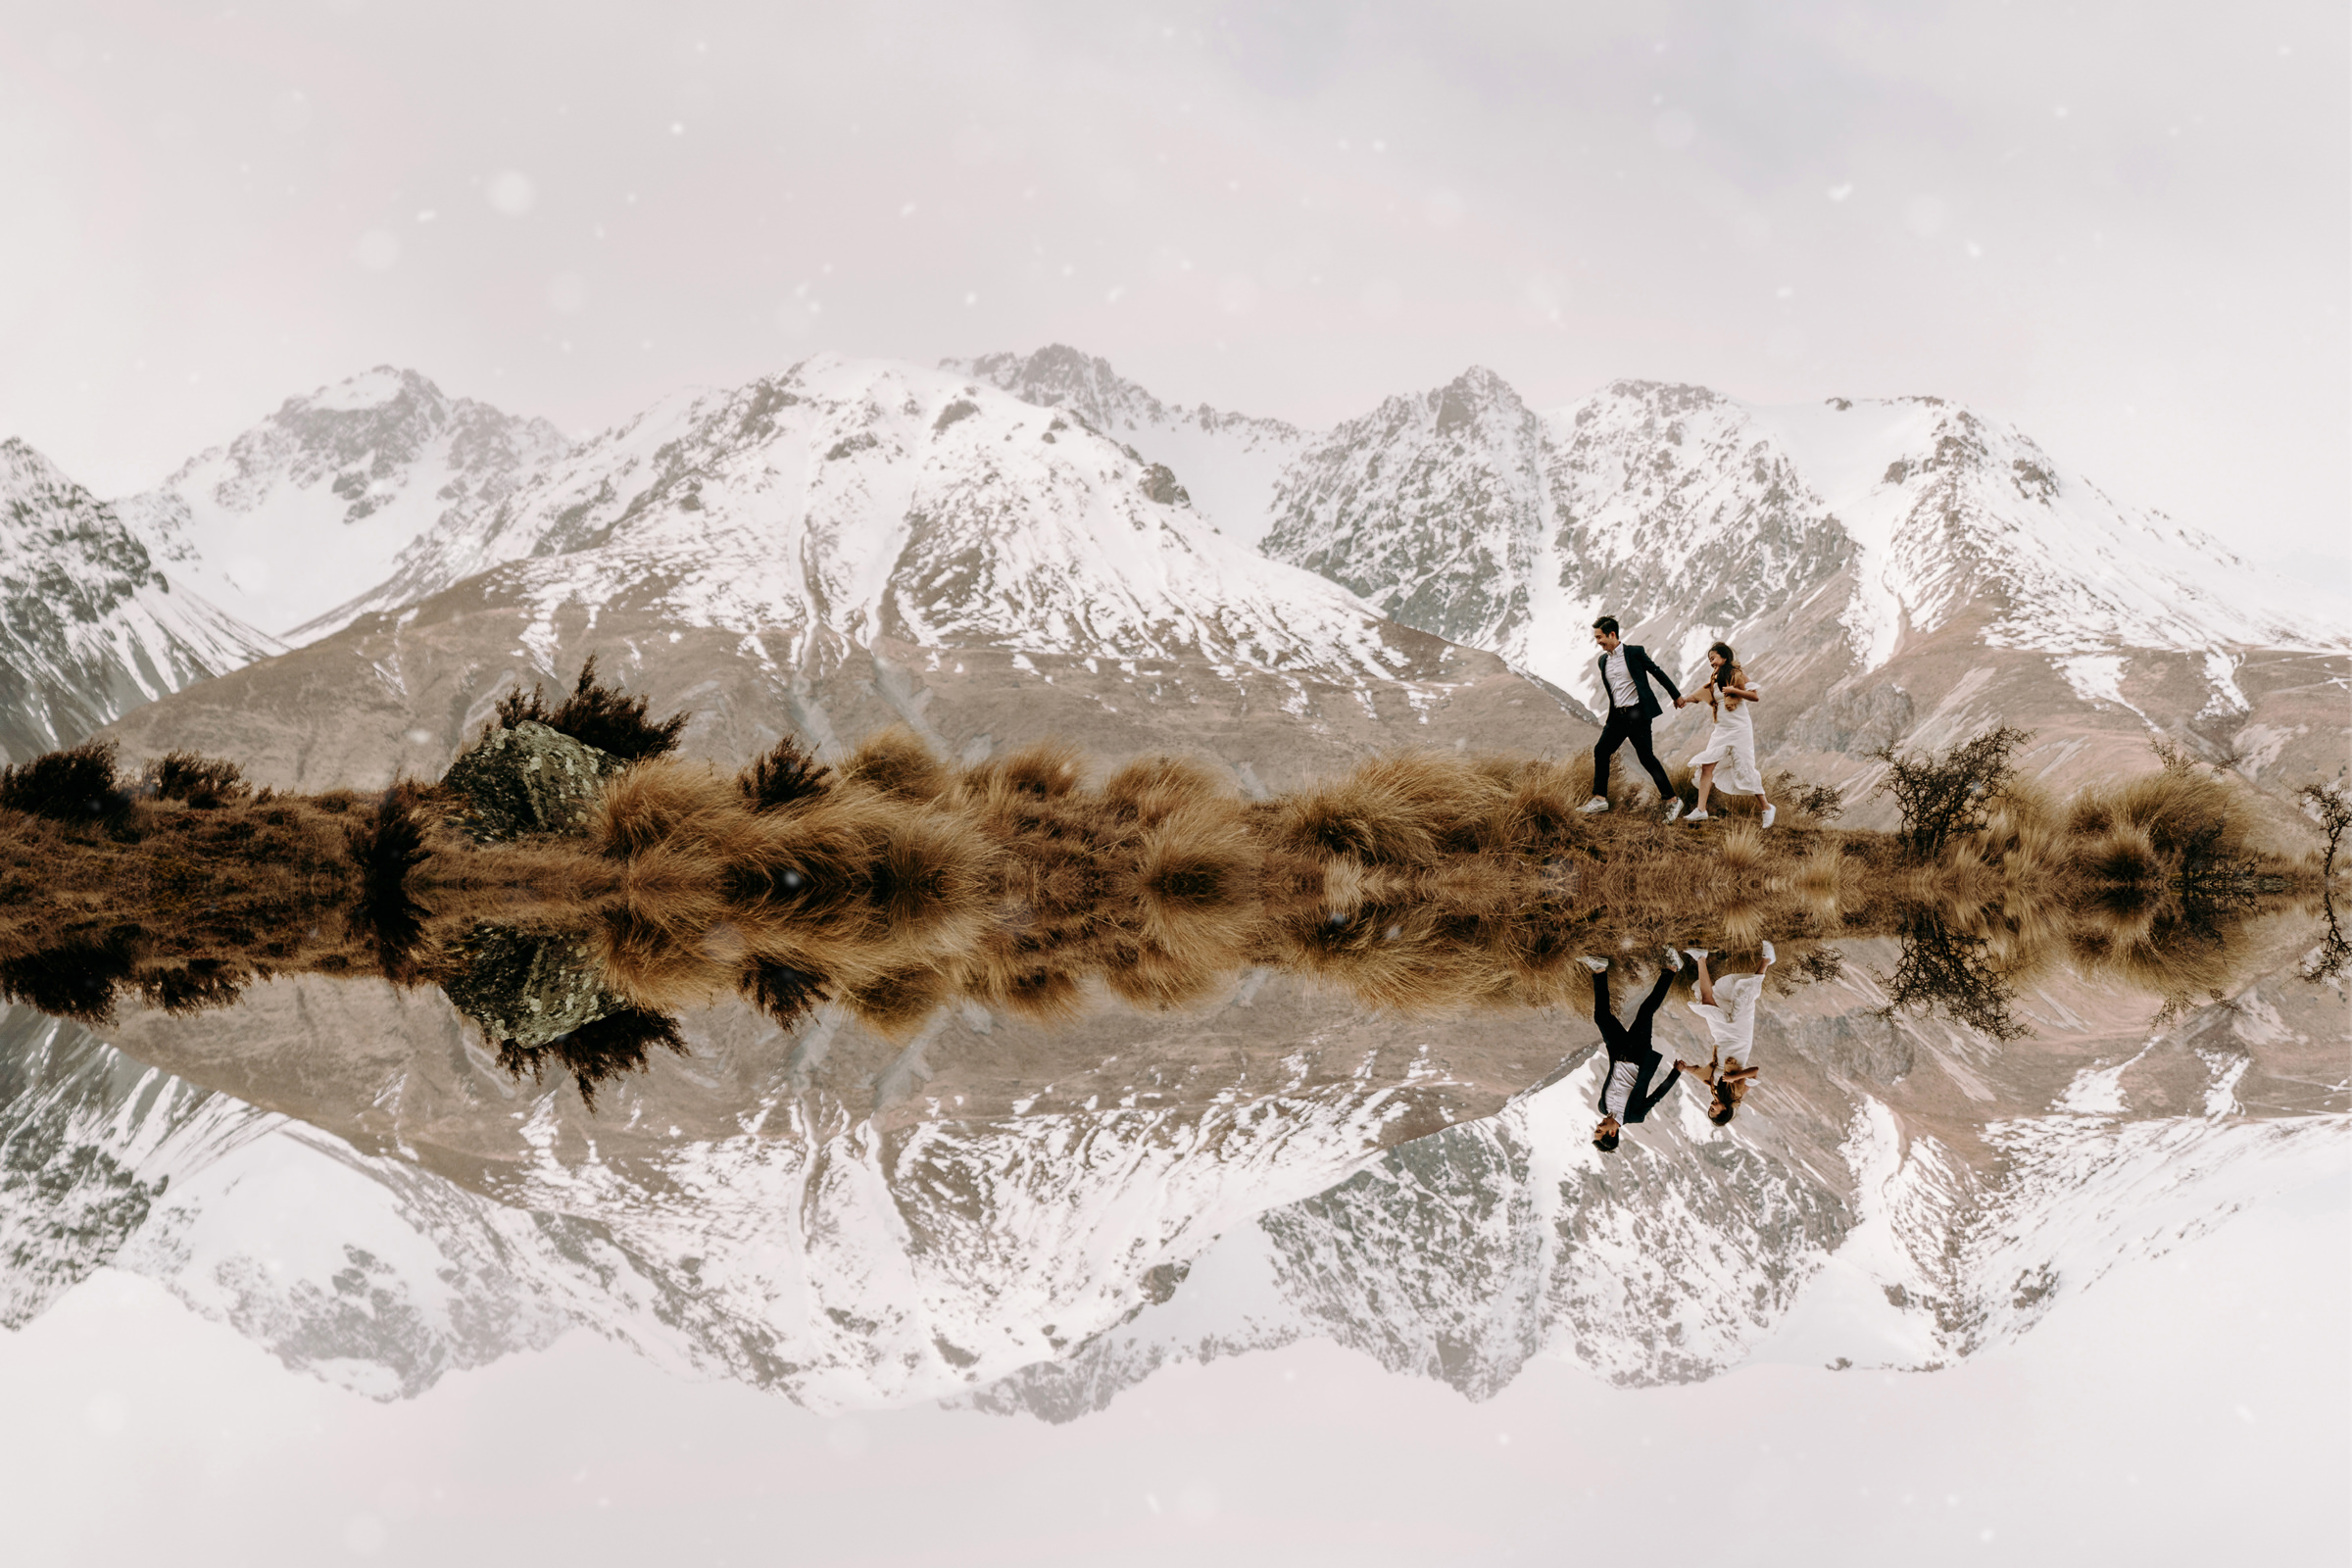 Couple walking against snowy mountains - photo by Tinted Photography